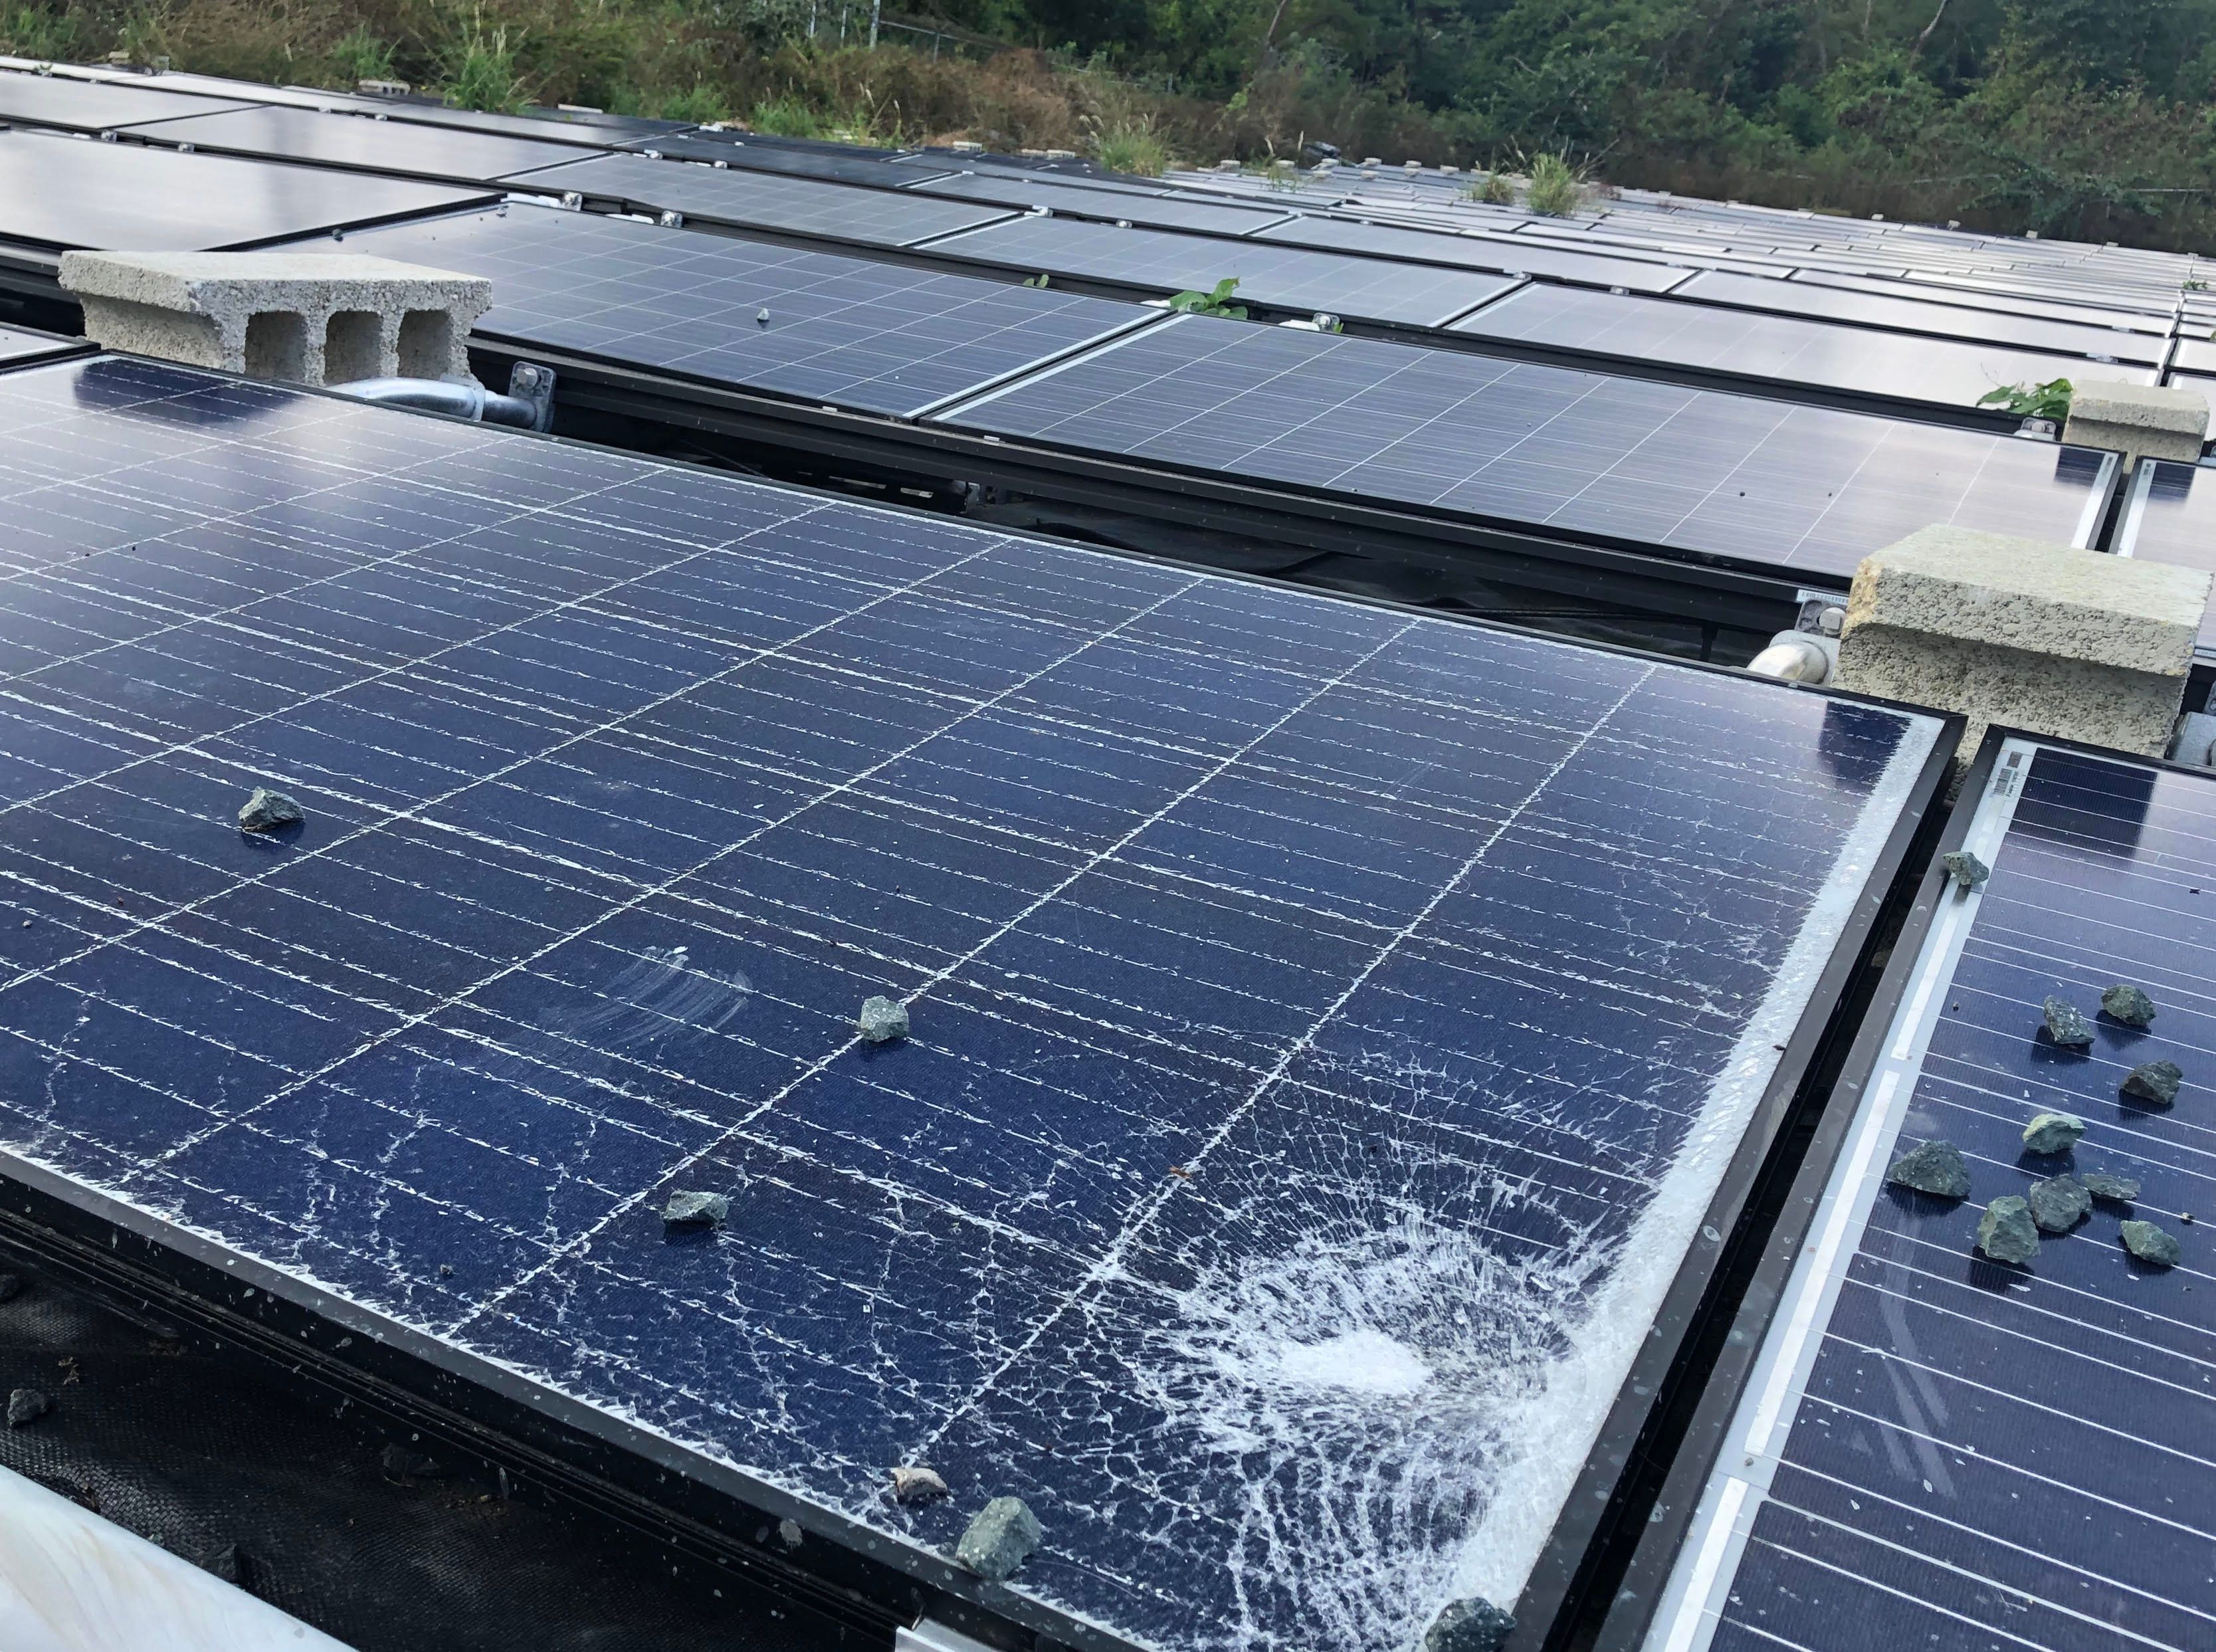 On Puerto Rico's 'Forgotten Island,' Tesla's Busted Solar Panels Tell A Cautionary